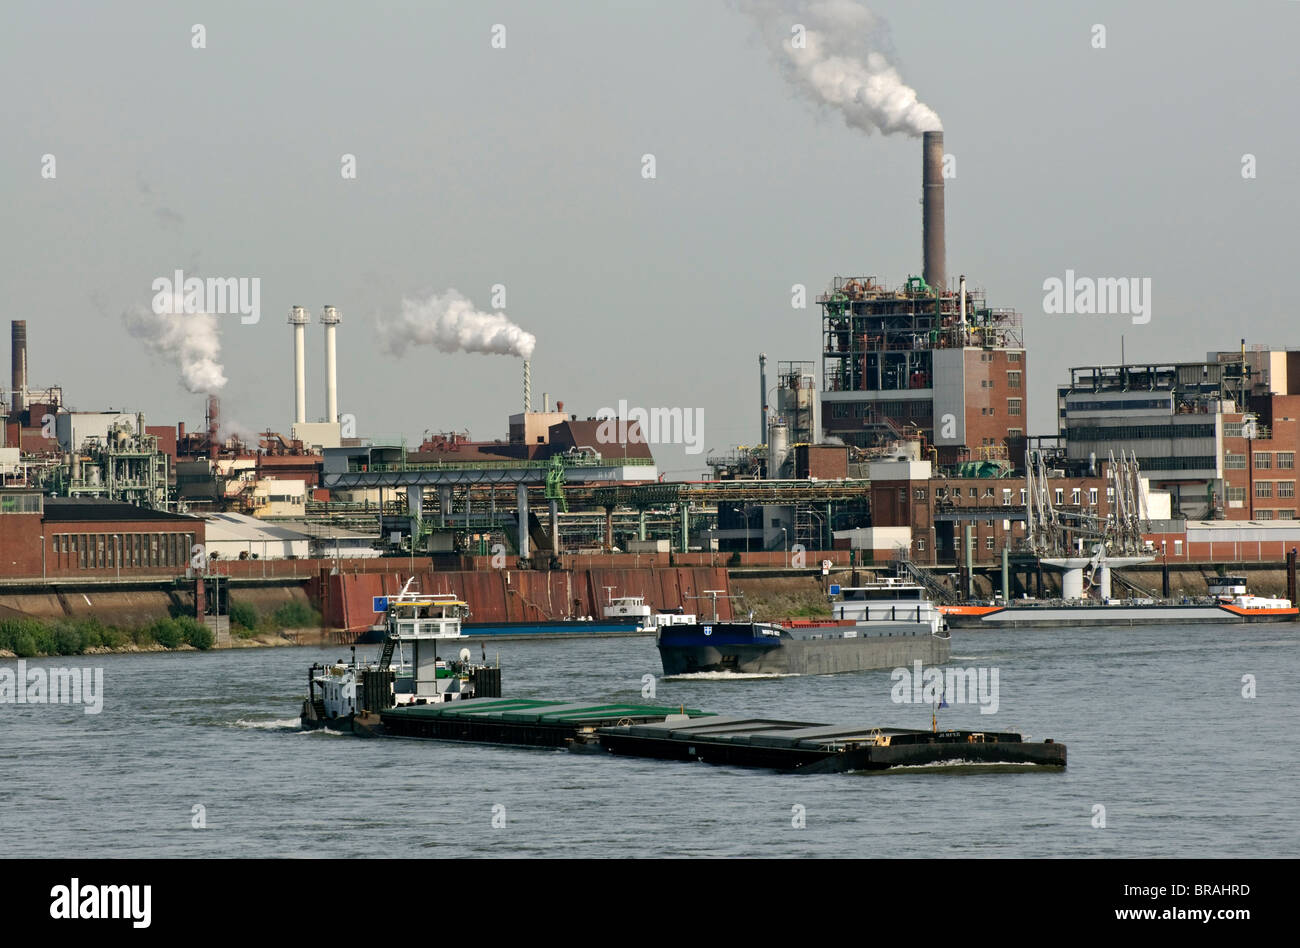 Boat traffic on the Rhine with Chempark Krefeld in background, NRW, Germany. - Stock Image